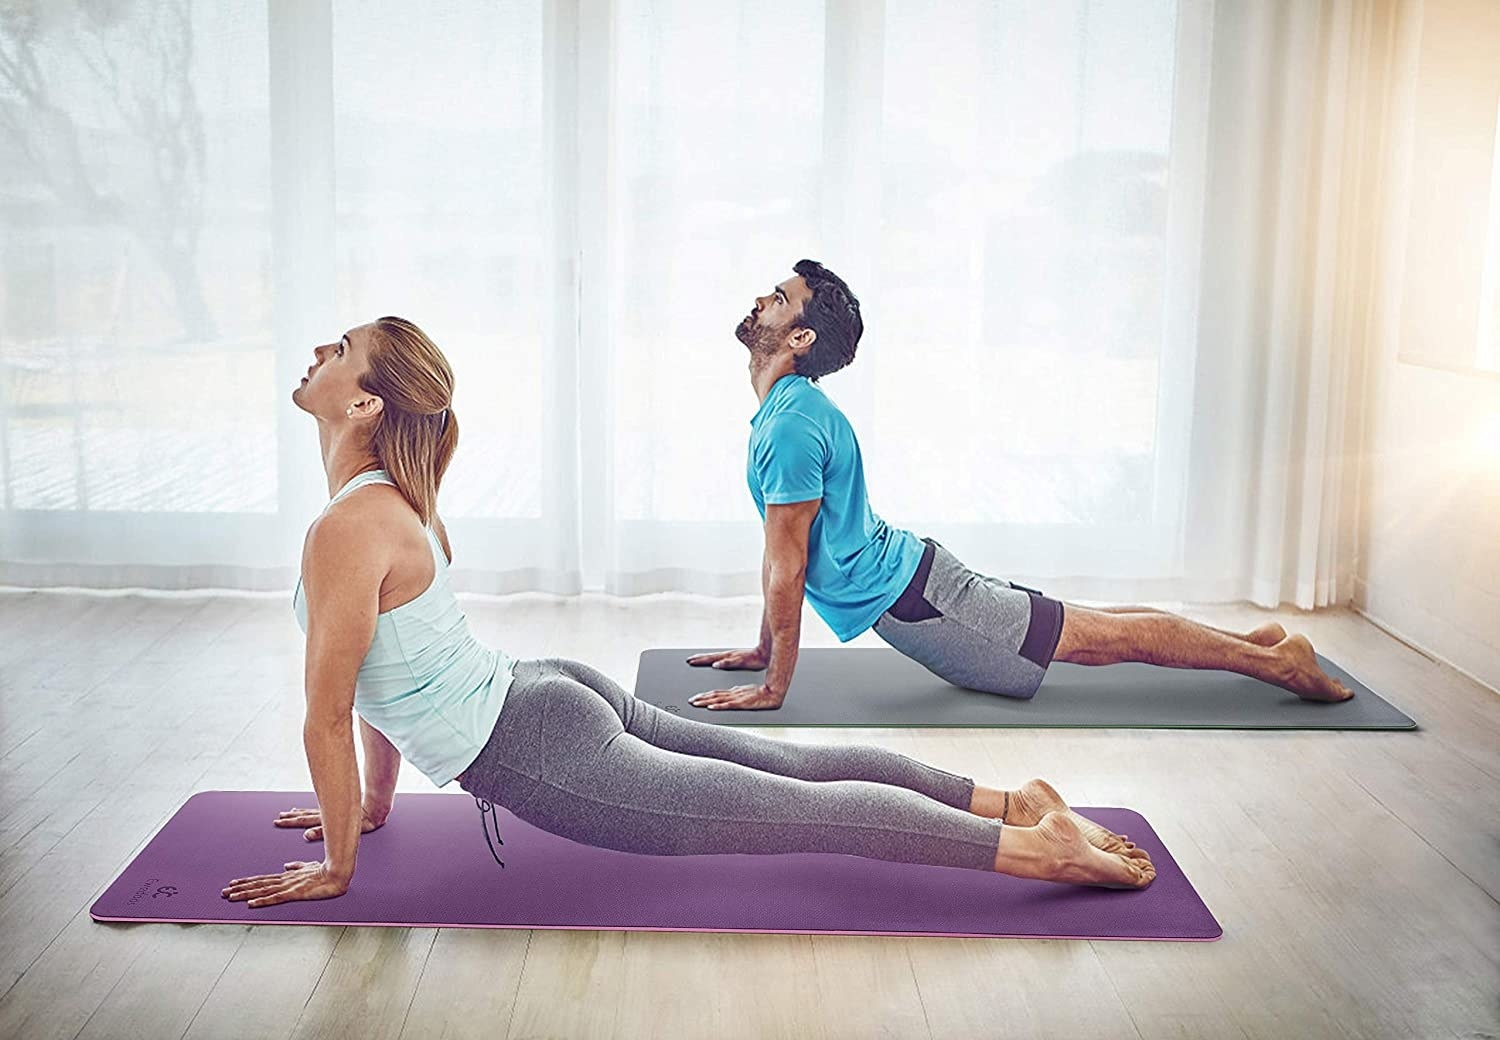 two people doing yoga on non slip yoga mats